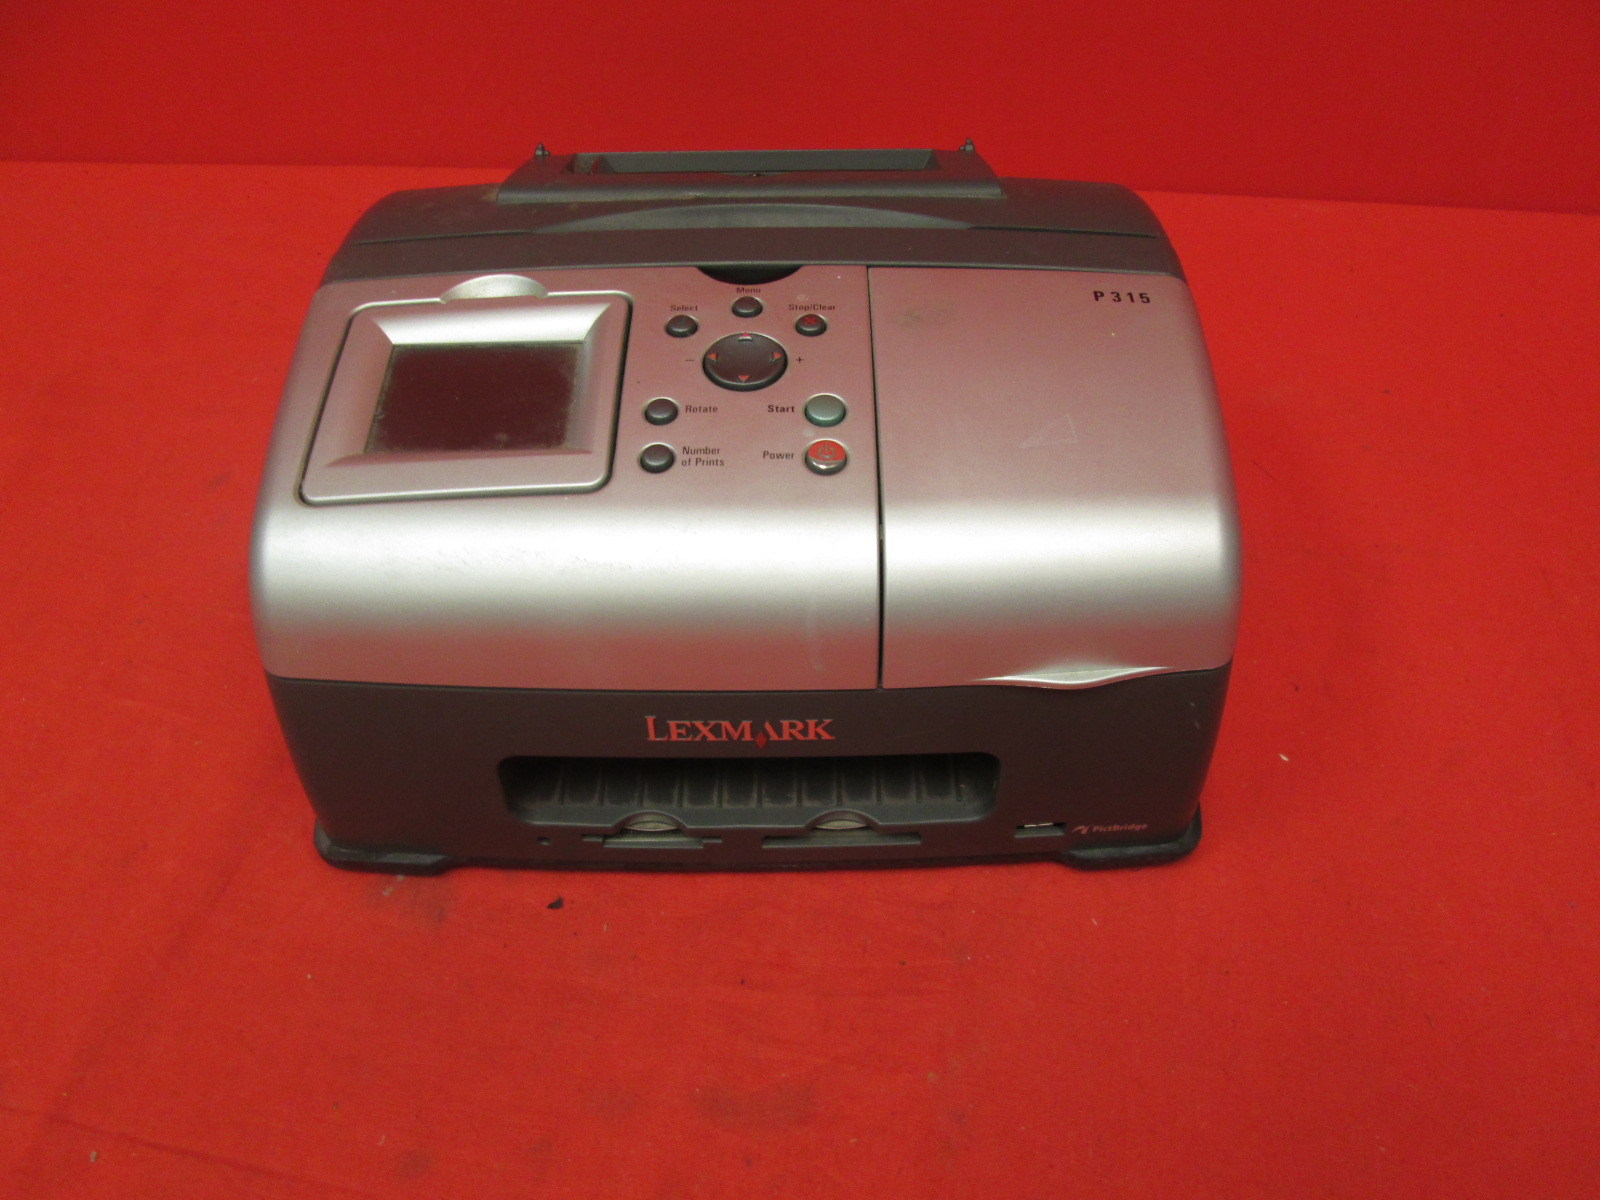 Lexmark P315 Snapshot Photo Inkjet Printer 4X6